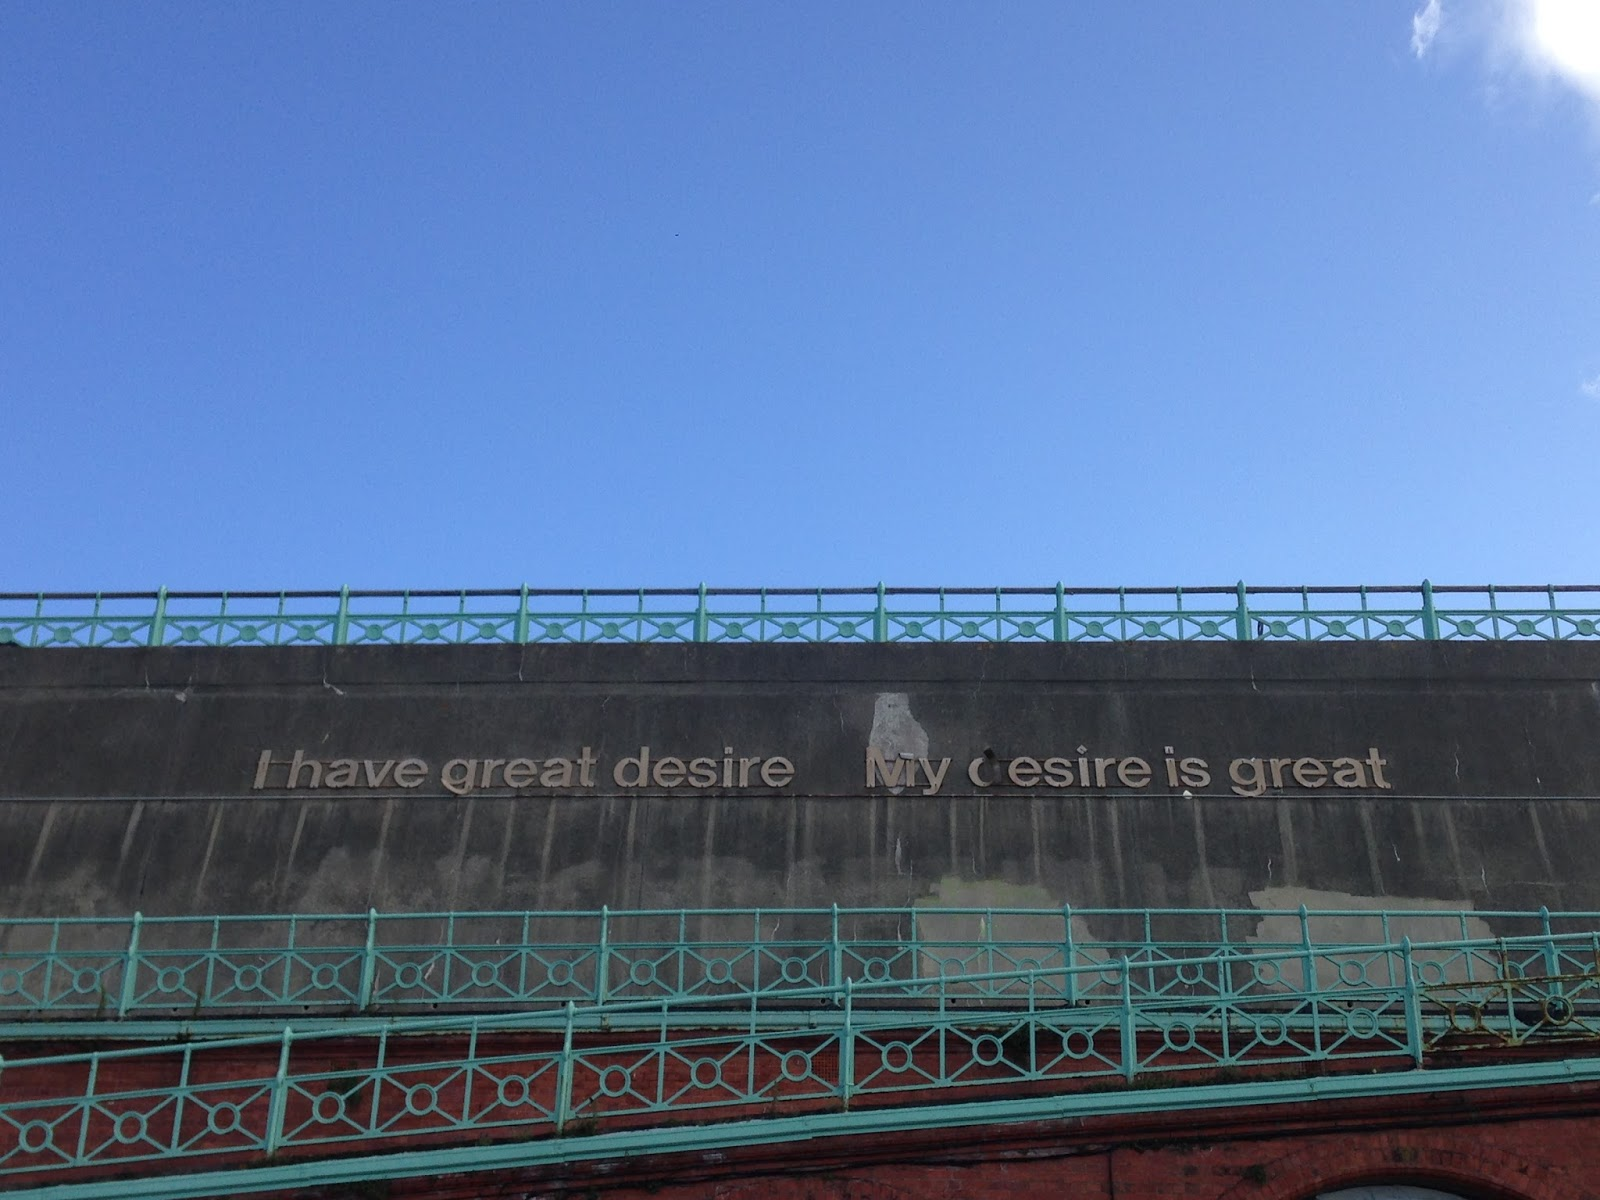 FitBits | I have great desire sign | Brighton seafront